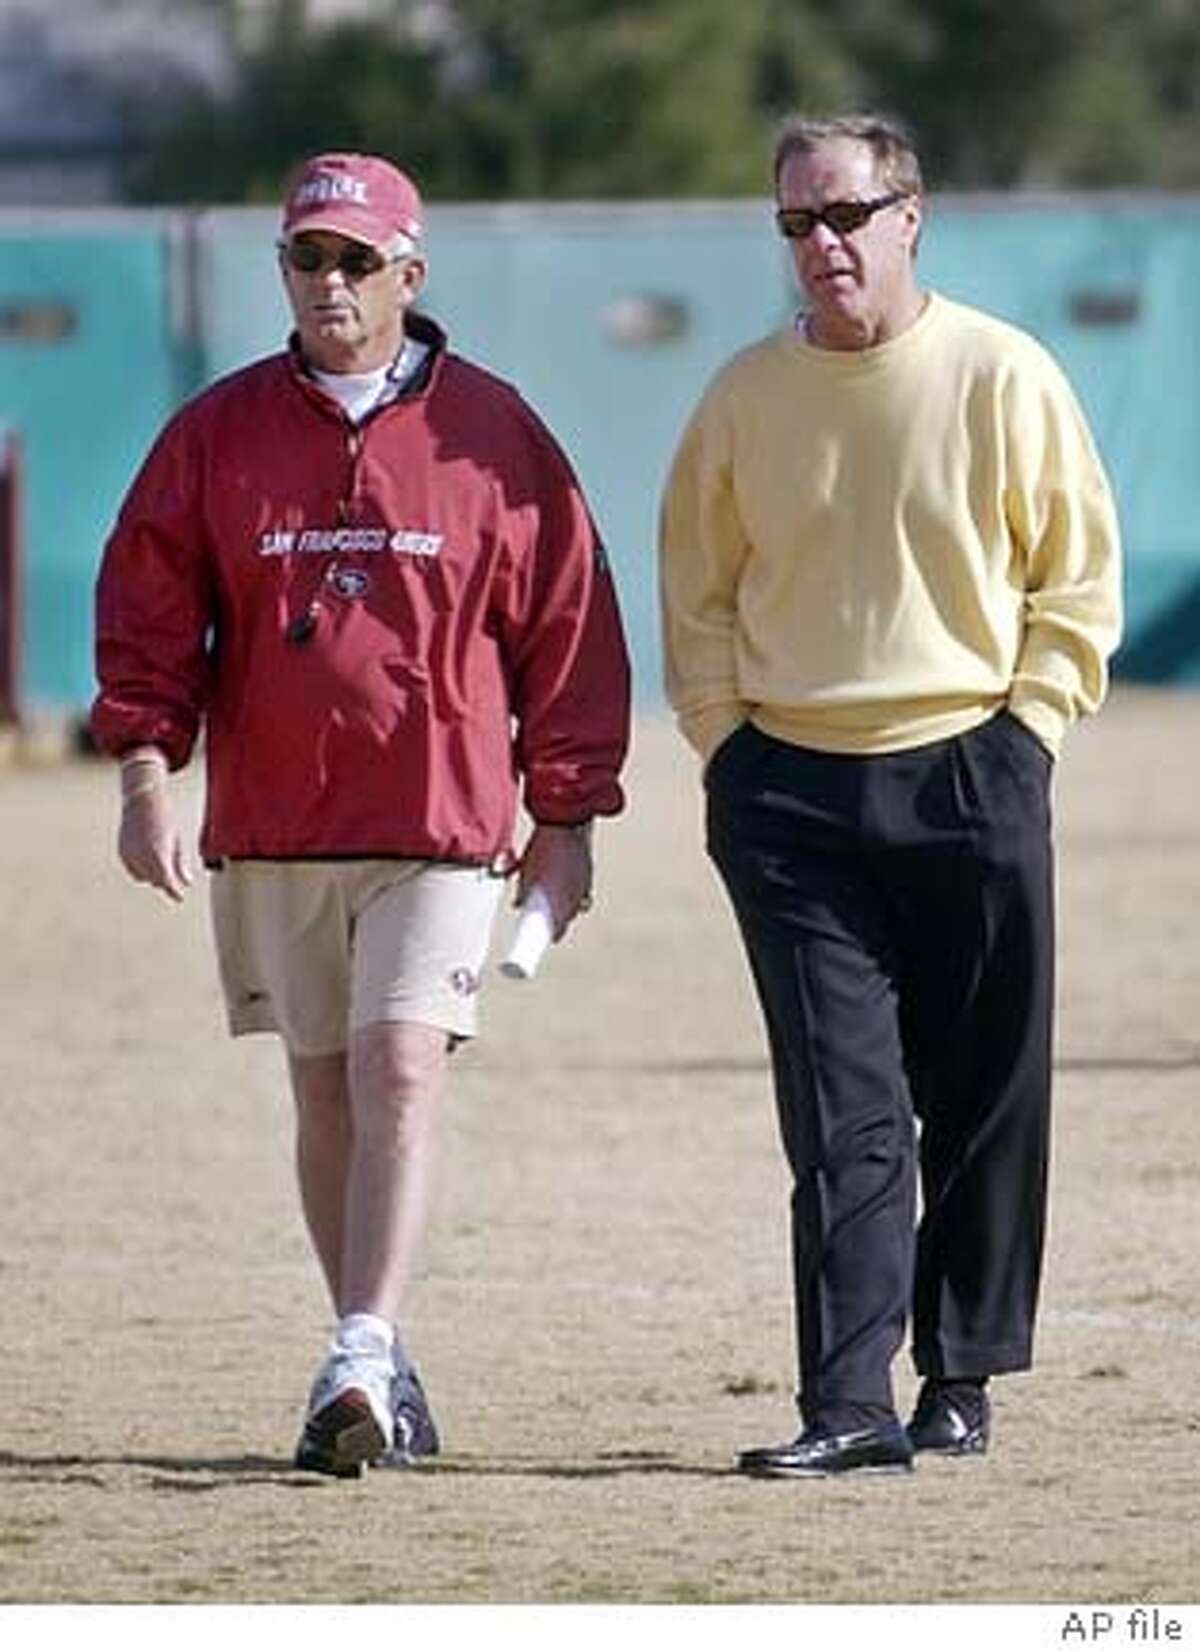 San Francisco 49ers coach Dennis Erickson, left, and 49ers general manager Terry Donahue, right, talk after practice at the 49ers training camp in Santa Clara, Calif., Wednesday, Dec. 15, 2004. Erickson withdrew from consideration for the vacant head coaching position at Mississippi after a two-hour meeting with the school's athletic director and chancellor on Tuesday night. He plans to finish the season with the 49ers, and still hopes to coach the team again next season. (AP Photo/Paul Sakuma) Ran on: 12-26-2004 The Chargers stuck with Marty Schottenheimer; should the 49ers do the same with Dennis Erickson (left) and Terry Donahue? Ran on: 12-26-2004 The Chargers stuck with Marty Schottenheimer; should the 49ers do the same with Dennis Erickson (left) and Terry Donahue?